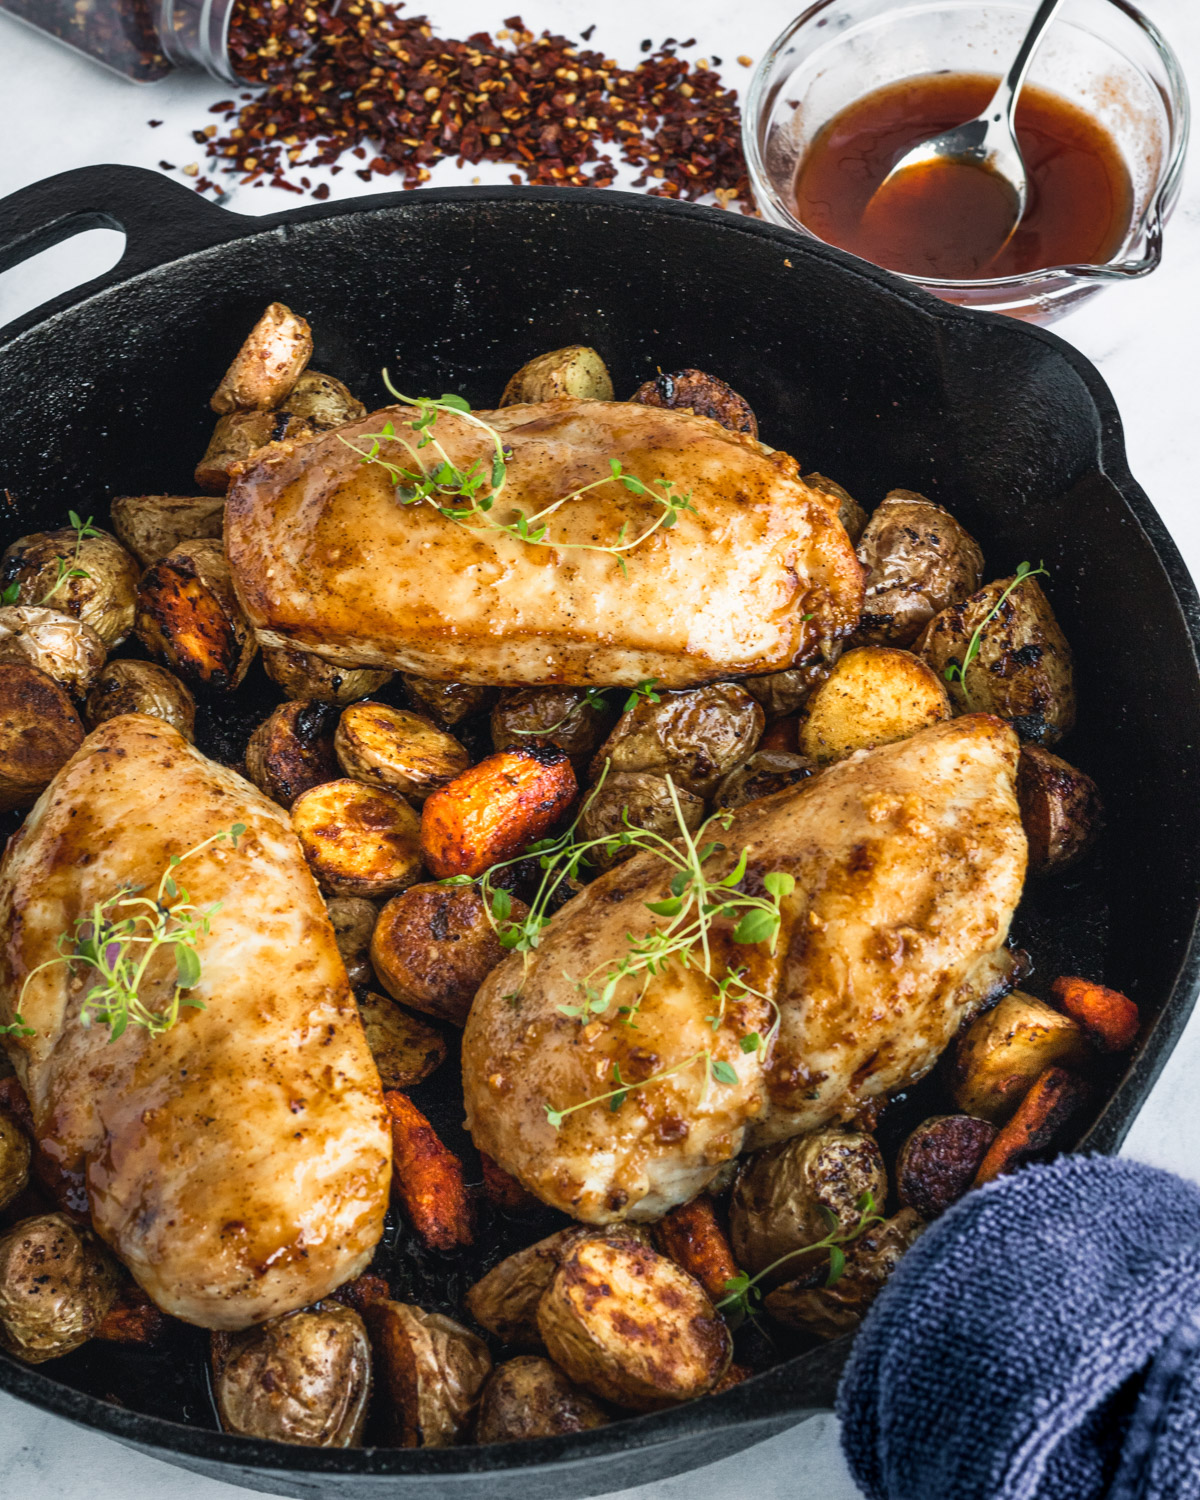 Cast iron skillet with roasted potatoes, carrots, and hot honey chicken - a bowl of hot honey and crushed red peppers at top of photo.